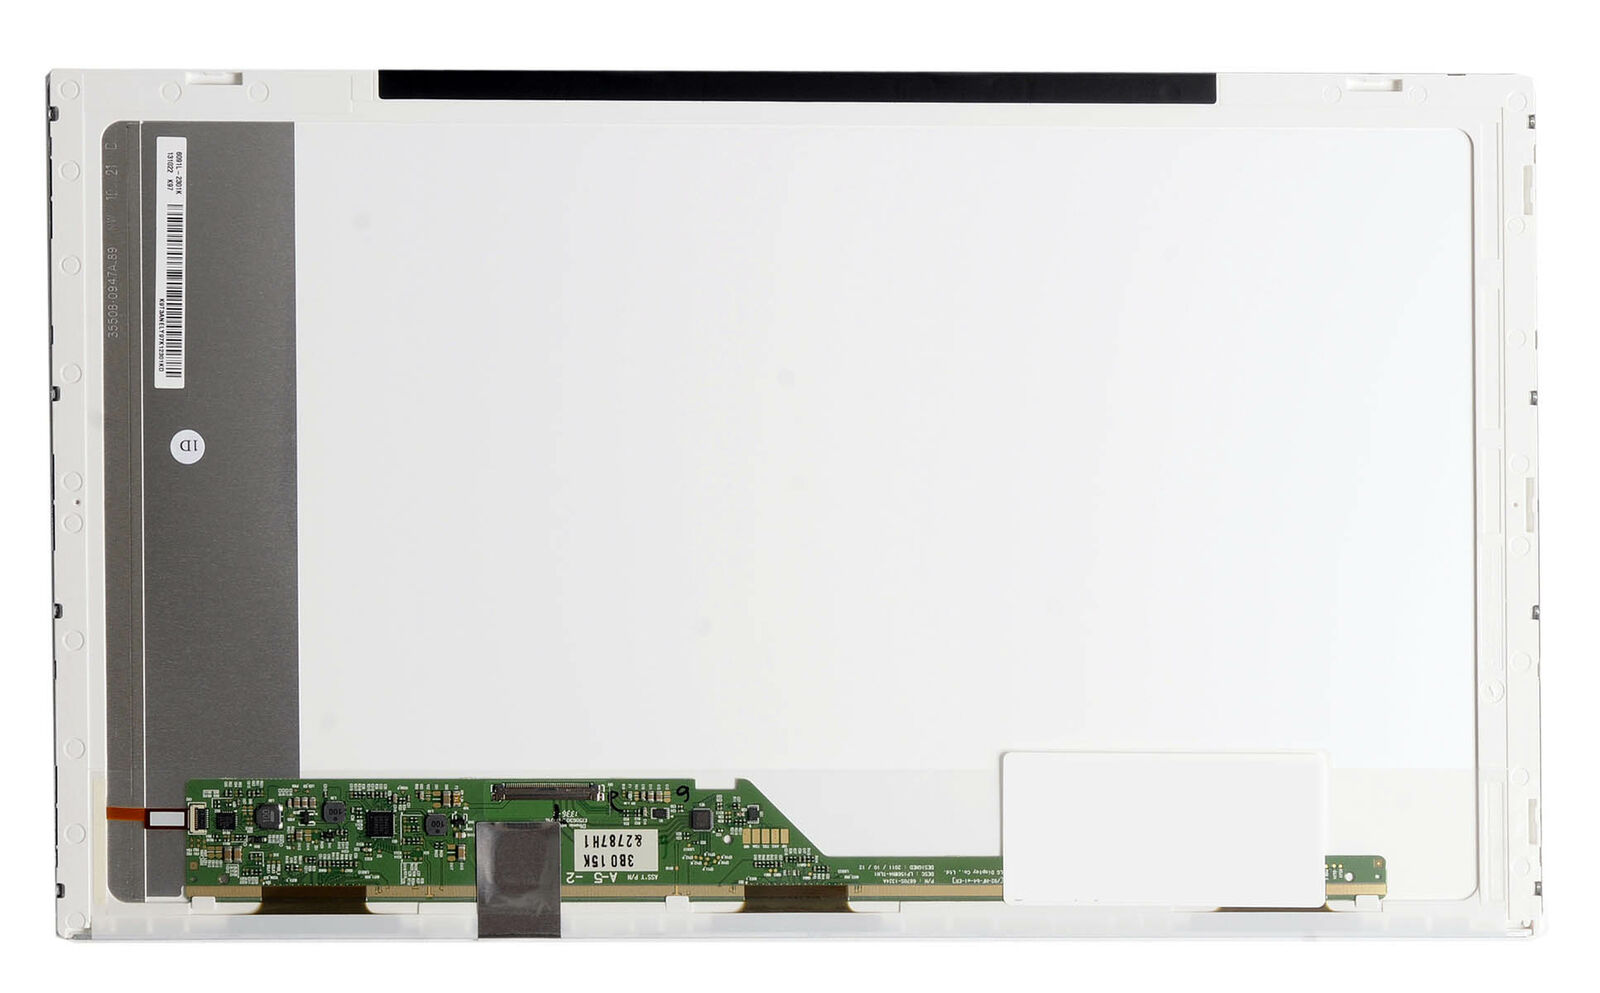 Asus A55A-Ab31 Replacement Laptop 15.6